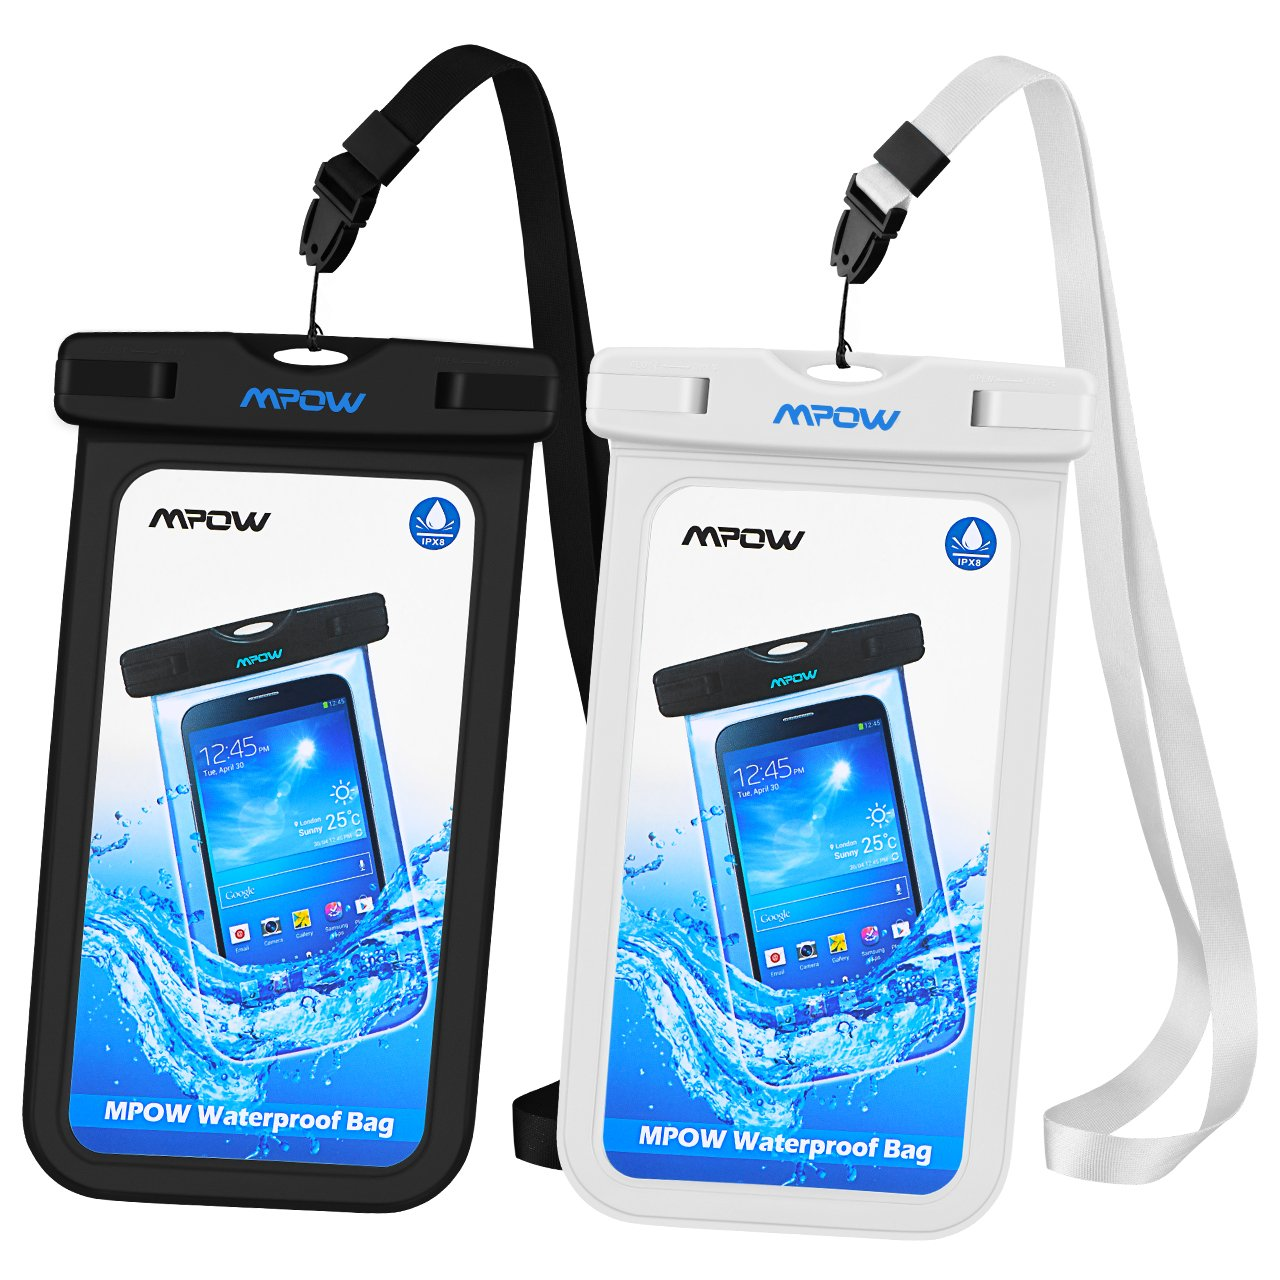 Mpow Universal Waterproof Case, IPX8 Waterproof Phone Pouch Dry Bag Compatible for iPhone Xs Max/XS/XR/X/8/8Plus/7/7Plus/6S/6/6S Plus Galaxy S9/S8/S7 Note 9/8 Google Pixel HTC12 (Black+White 2-Pack)